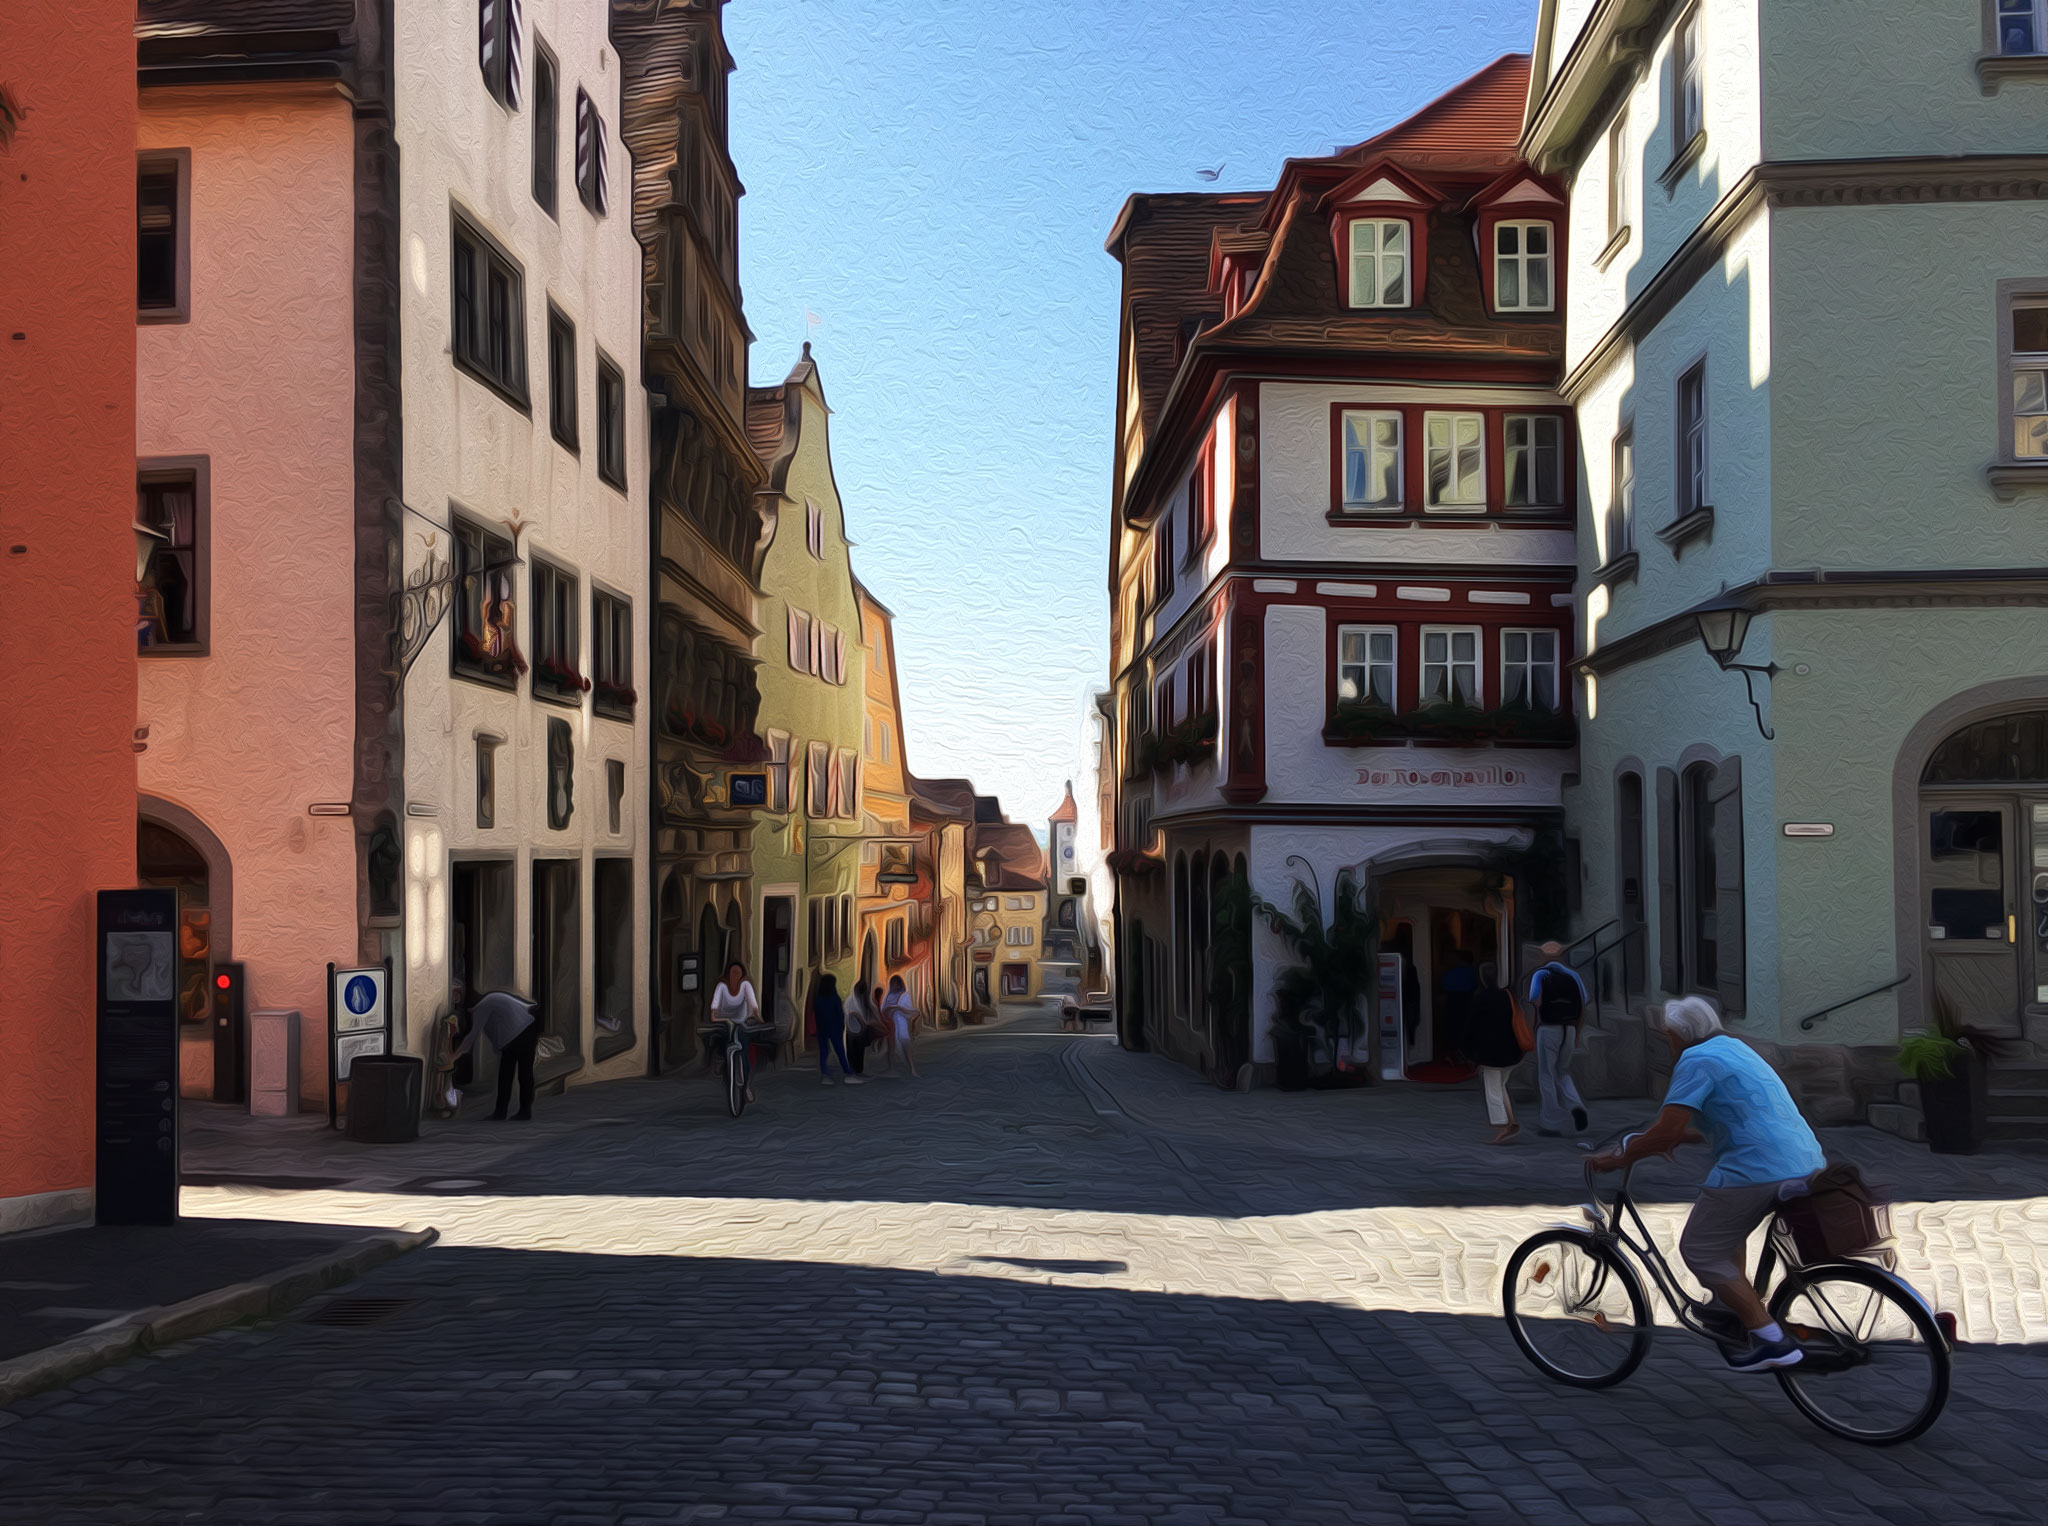 Morning in Rothenburg